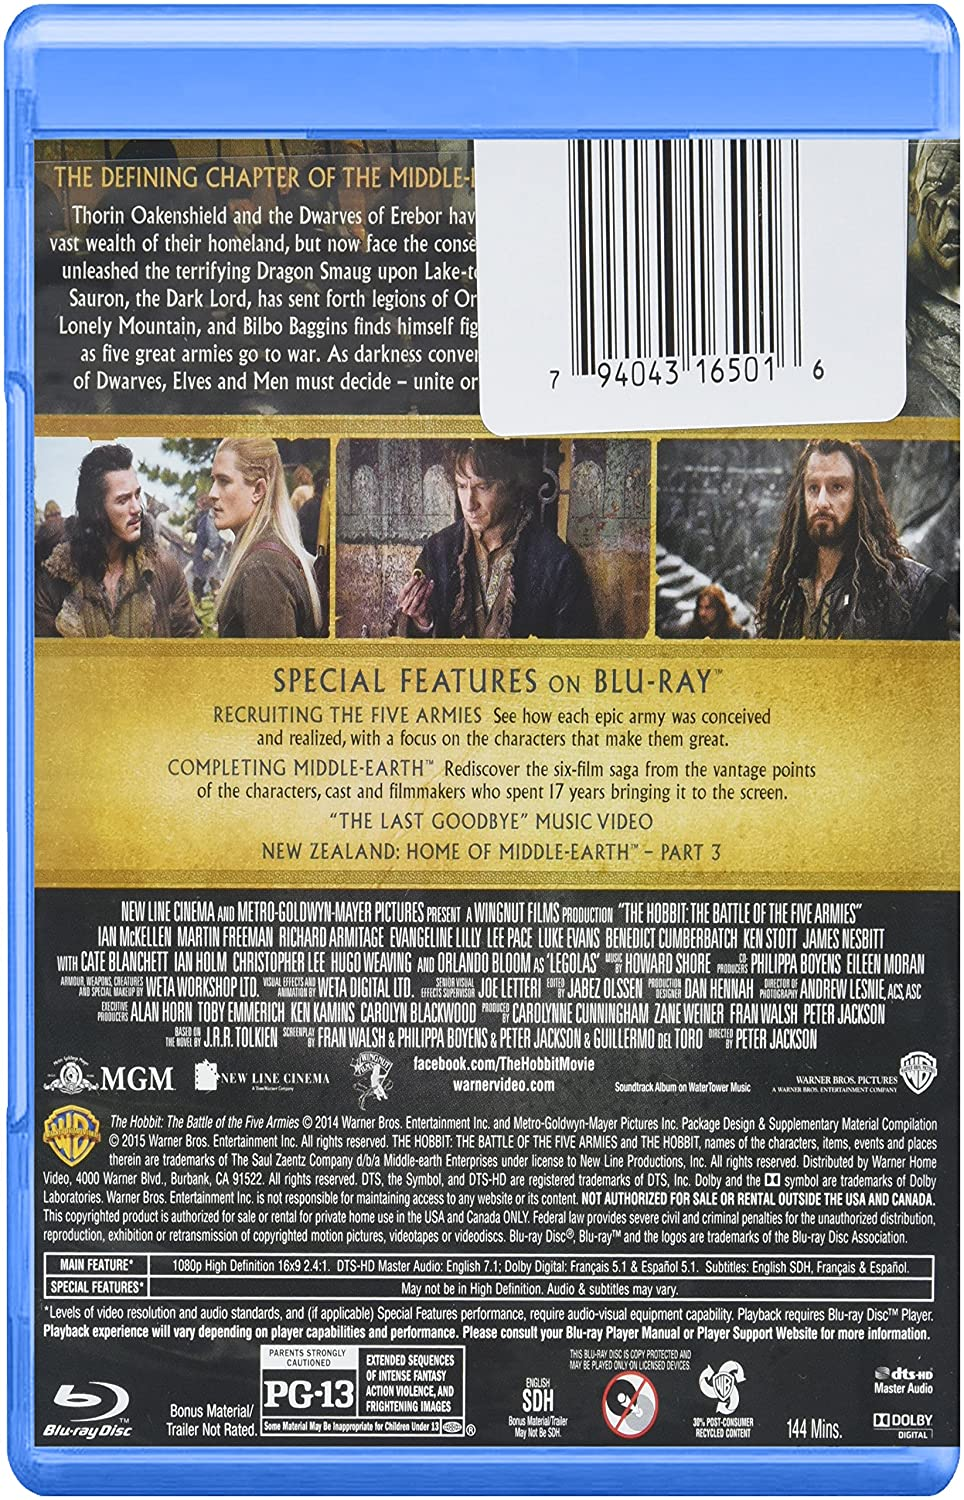 Amazon com: The Hobbit: The Battle of the Five Armies (Blu-ray +